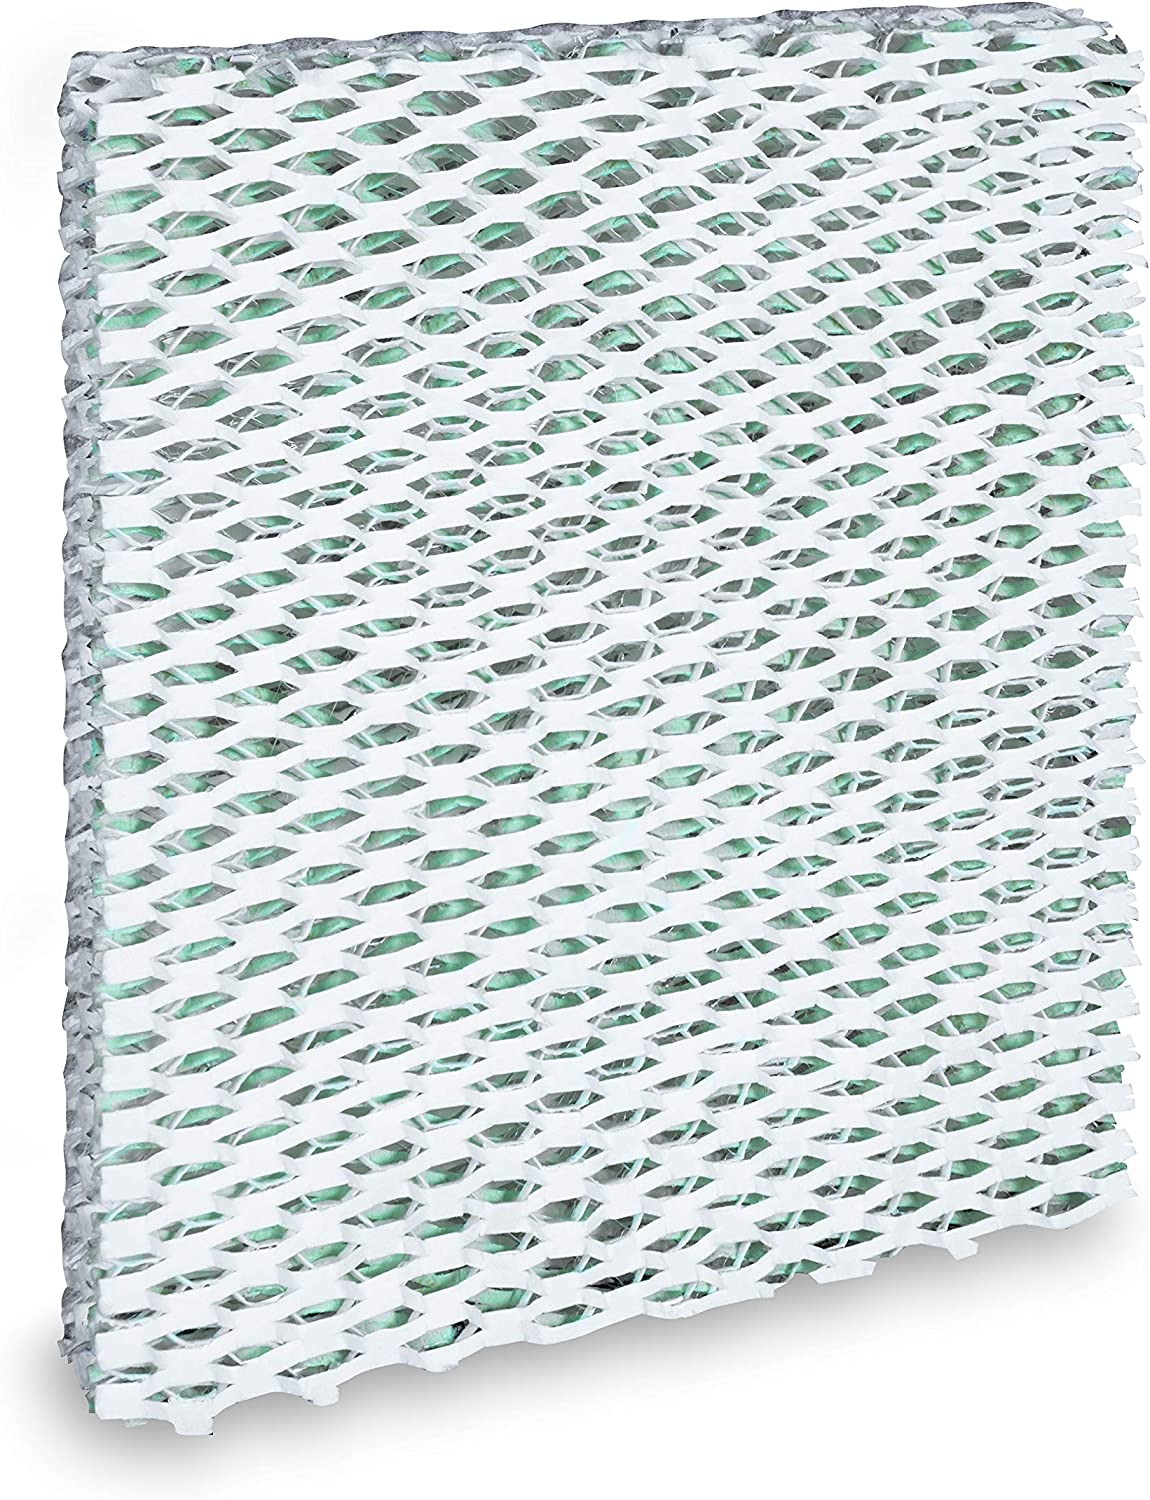 Appliances BestAir CB43 Paper Wick Humidifier Filter 6 pack Essick ...